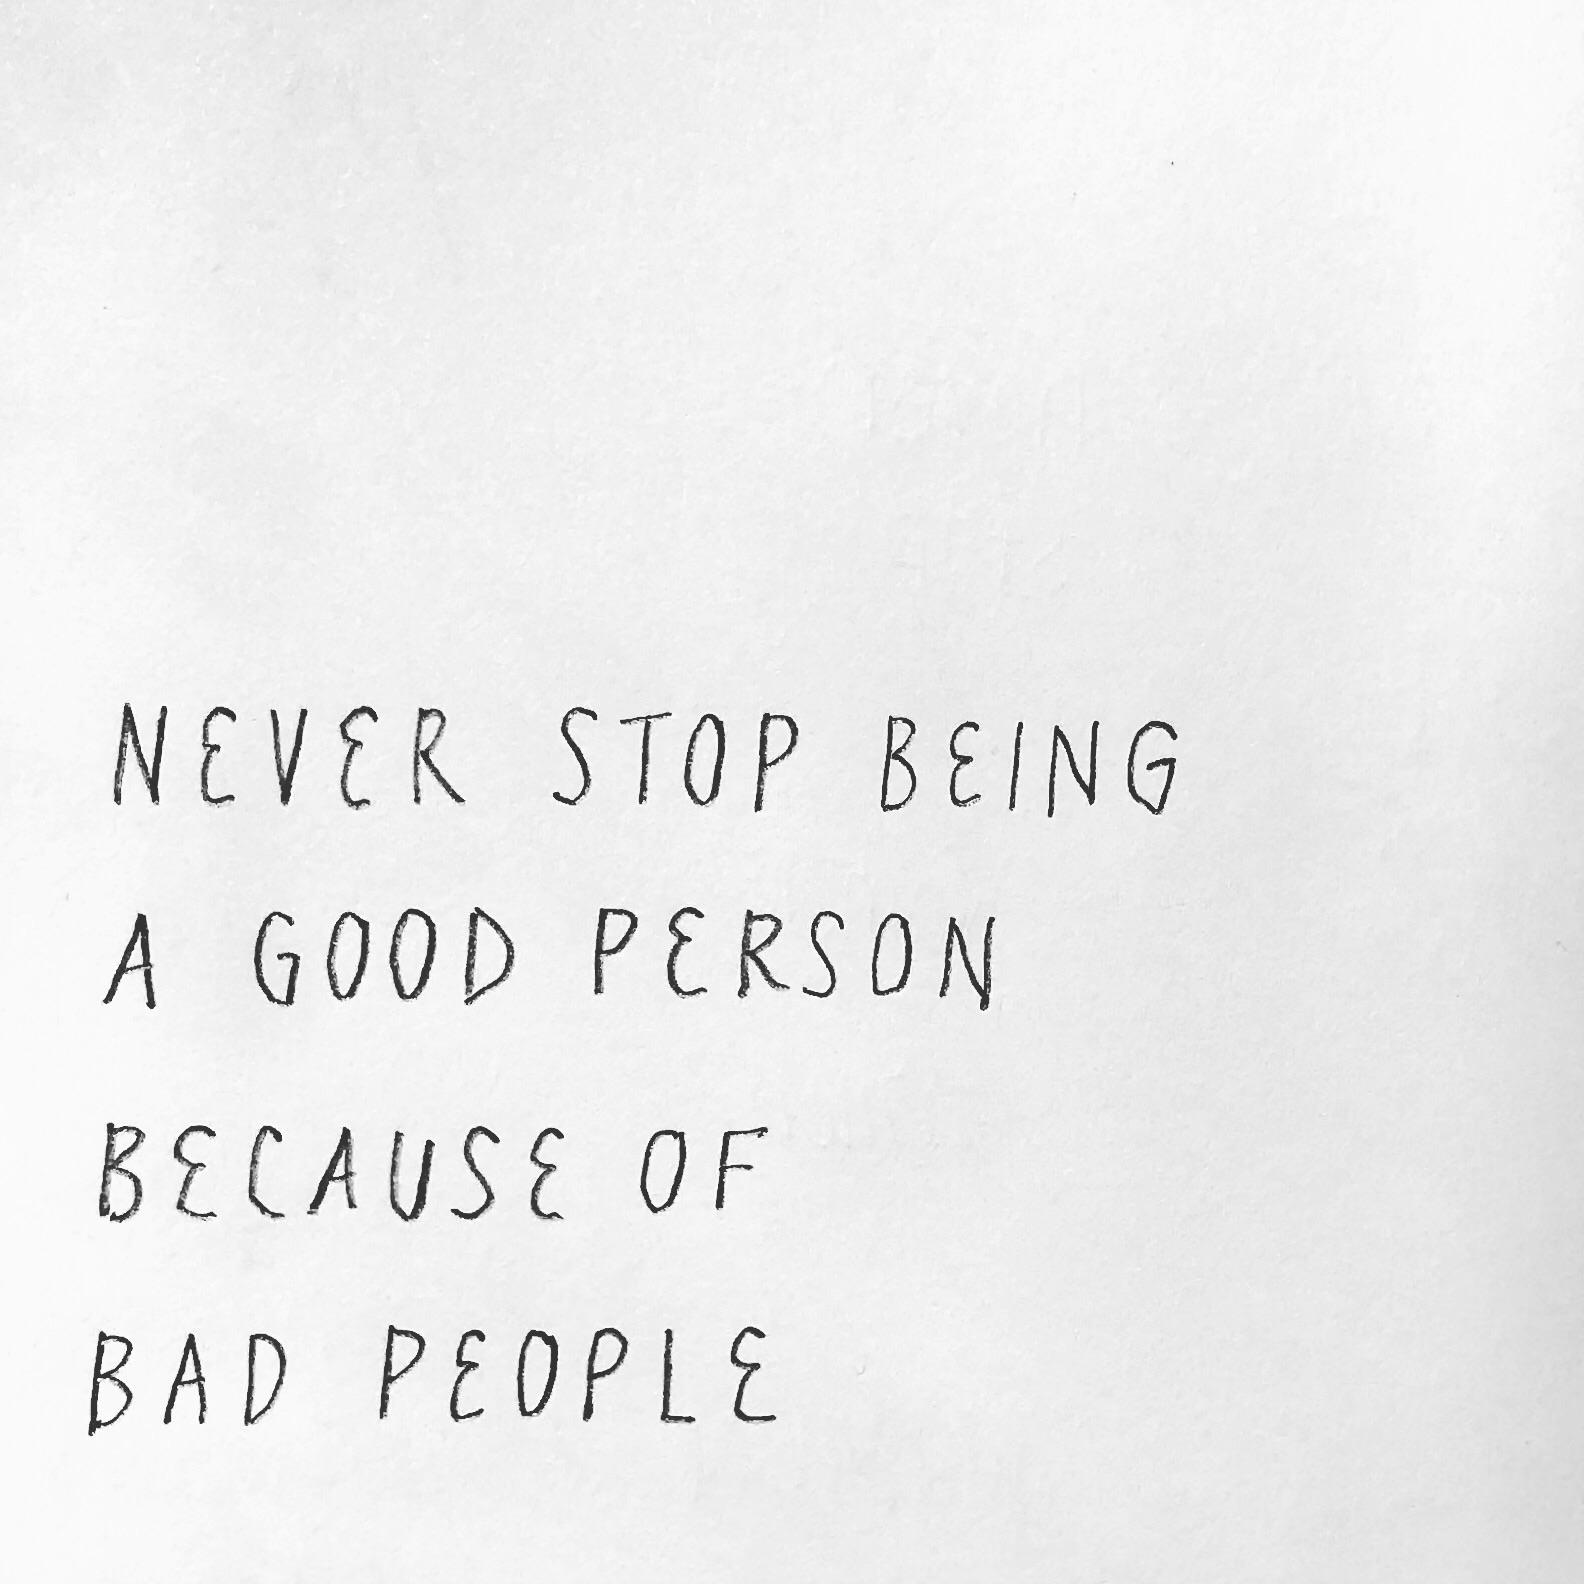 [Image] Never stop being a good person because of bad people